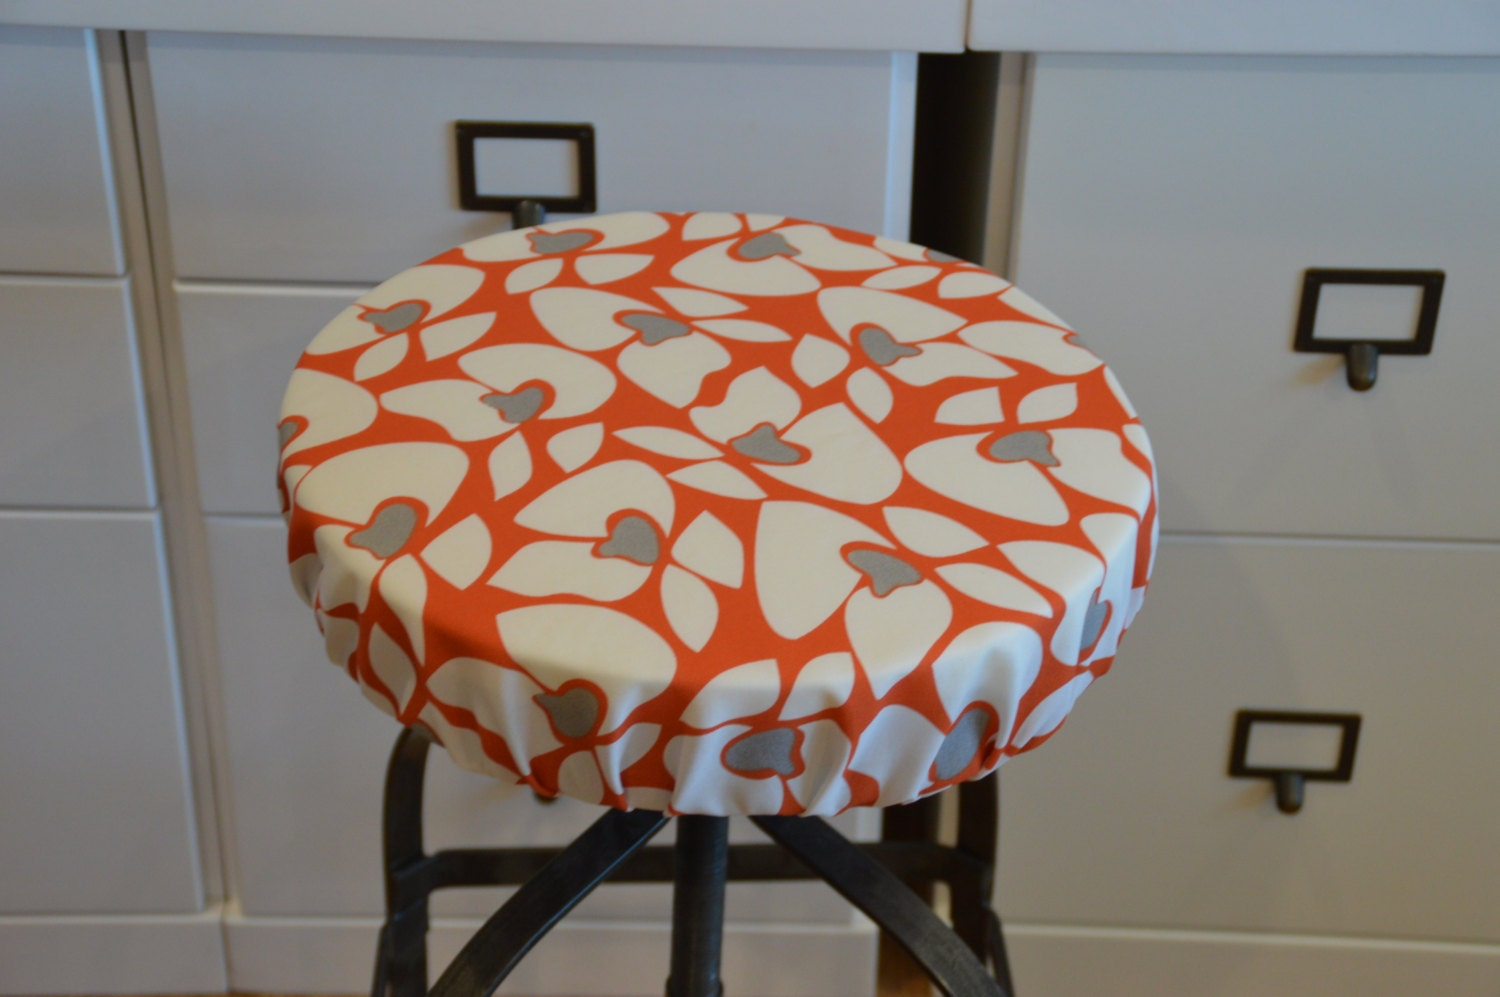 Round barstool cover with cushioned foam Elasticized Floral : ilfullxfull7757137312pxl from www.etsy.com size 1500 x 997 jpeg 240kB